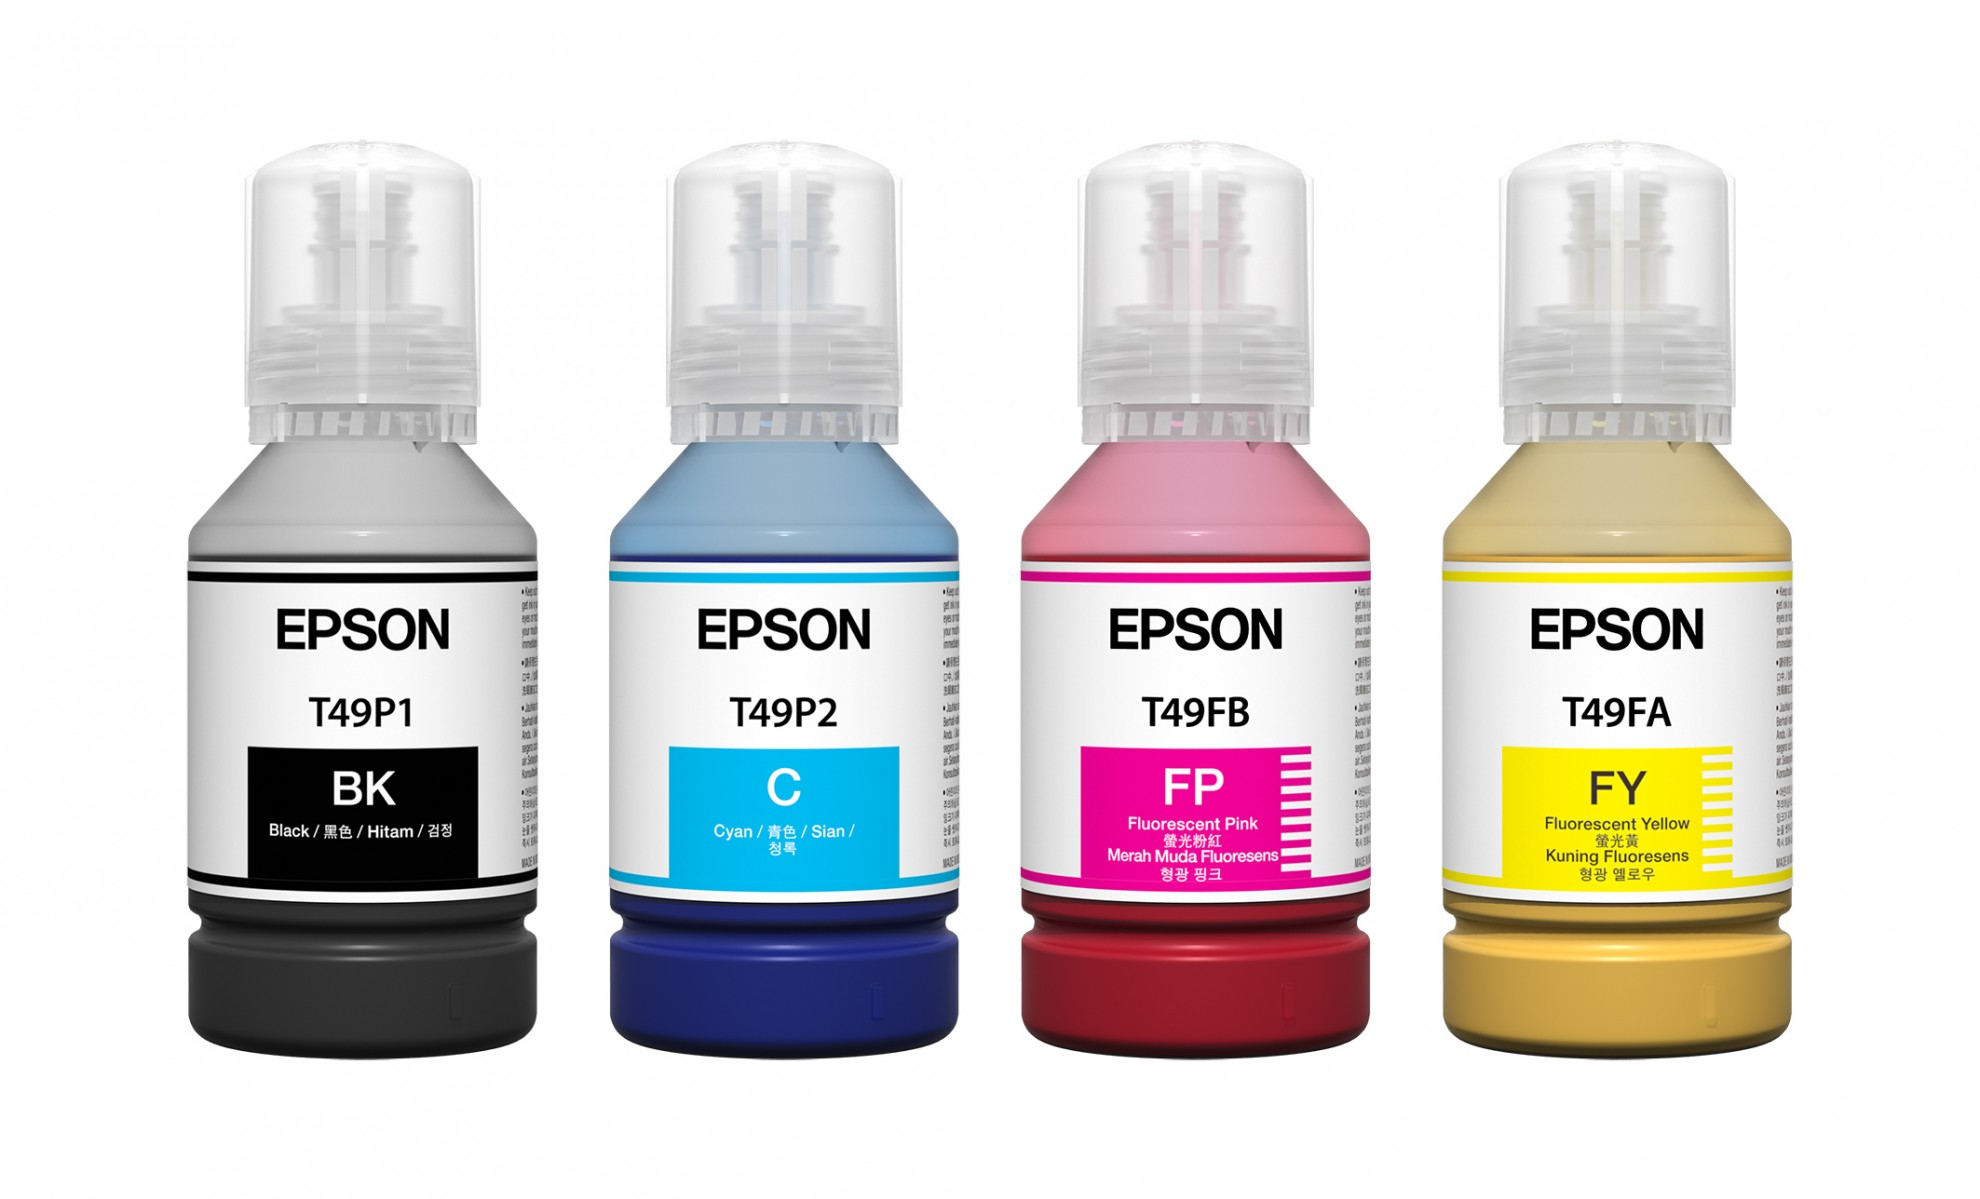 Fluorescentný sublimačný atrament EPSON C13T49P 140 ml